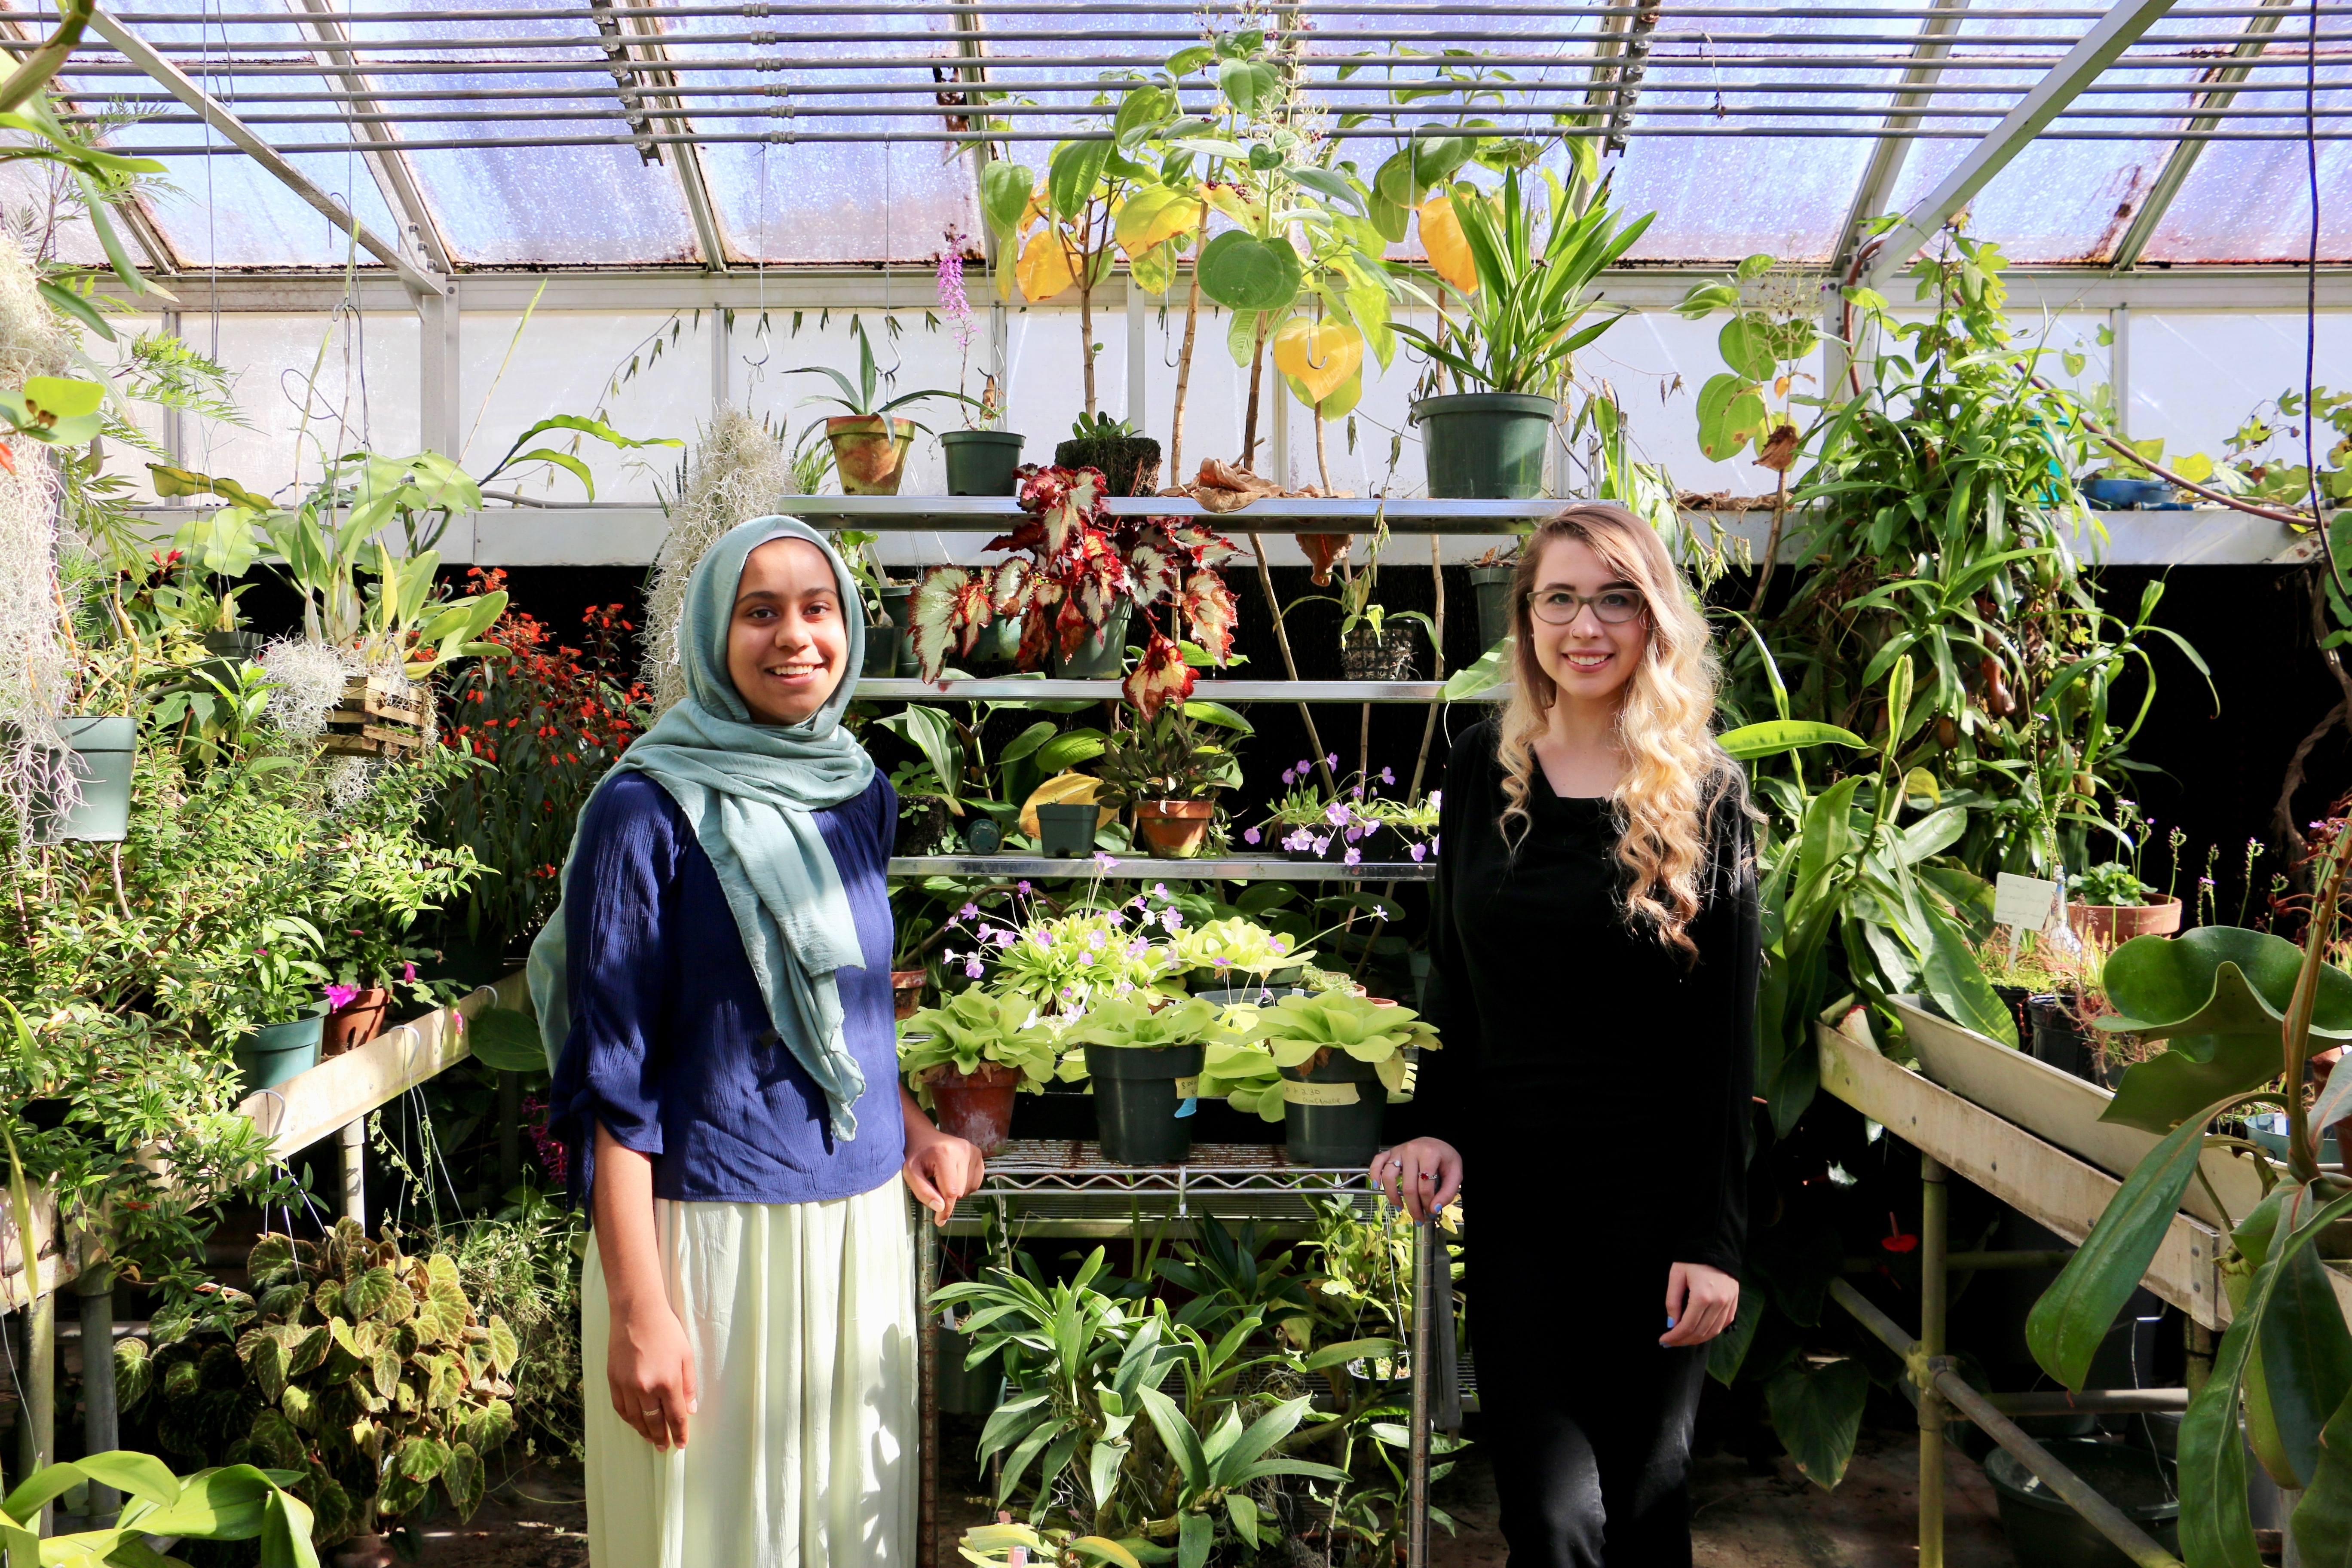 Ruqayah Bhuiyan, left, a horticulture student in the UGA College of Agricultural and Environmental Sciences, and Niki Padgett, a biology student in the UGA Franklin College of Arts and Sciences, will head to the Kennedy Space Center in Florida for research internships focusing on ways to grow food in space this spring.